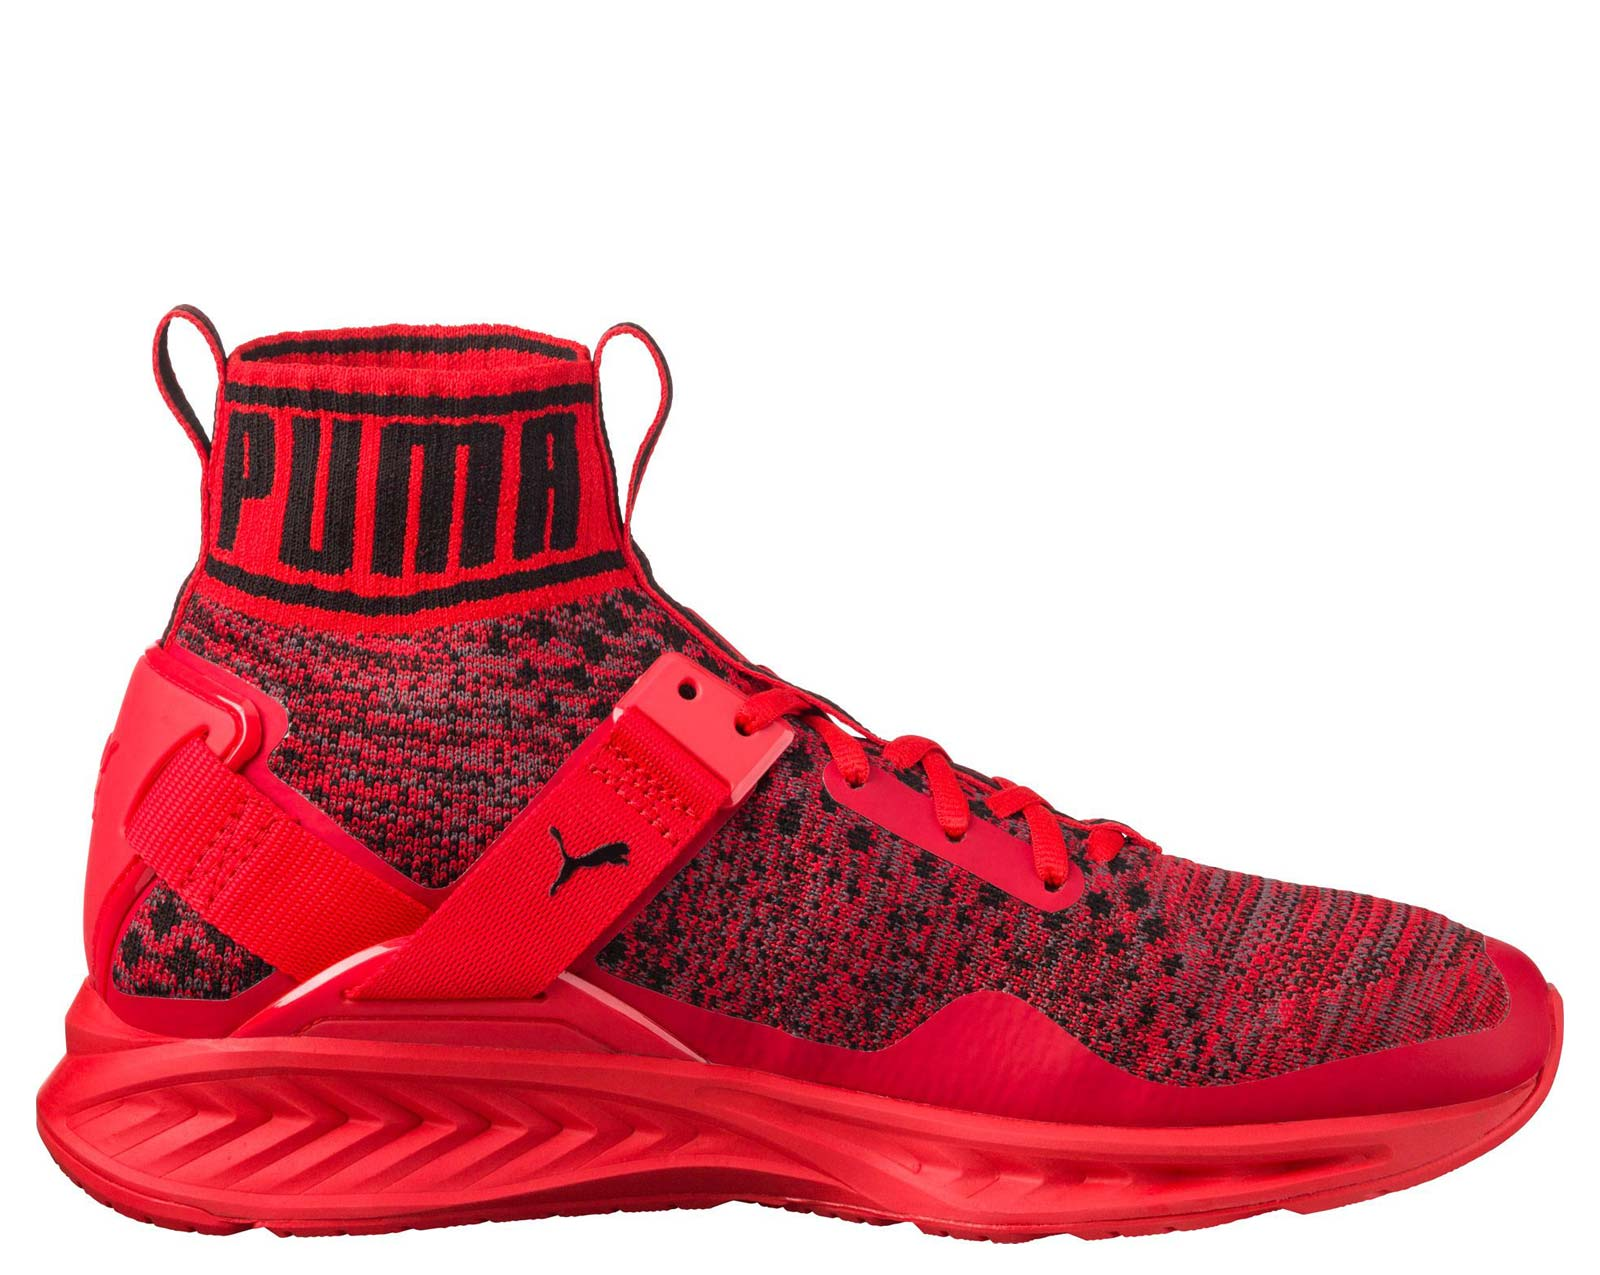 Pumas Newest Running Shoes